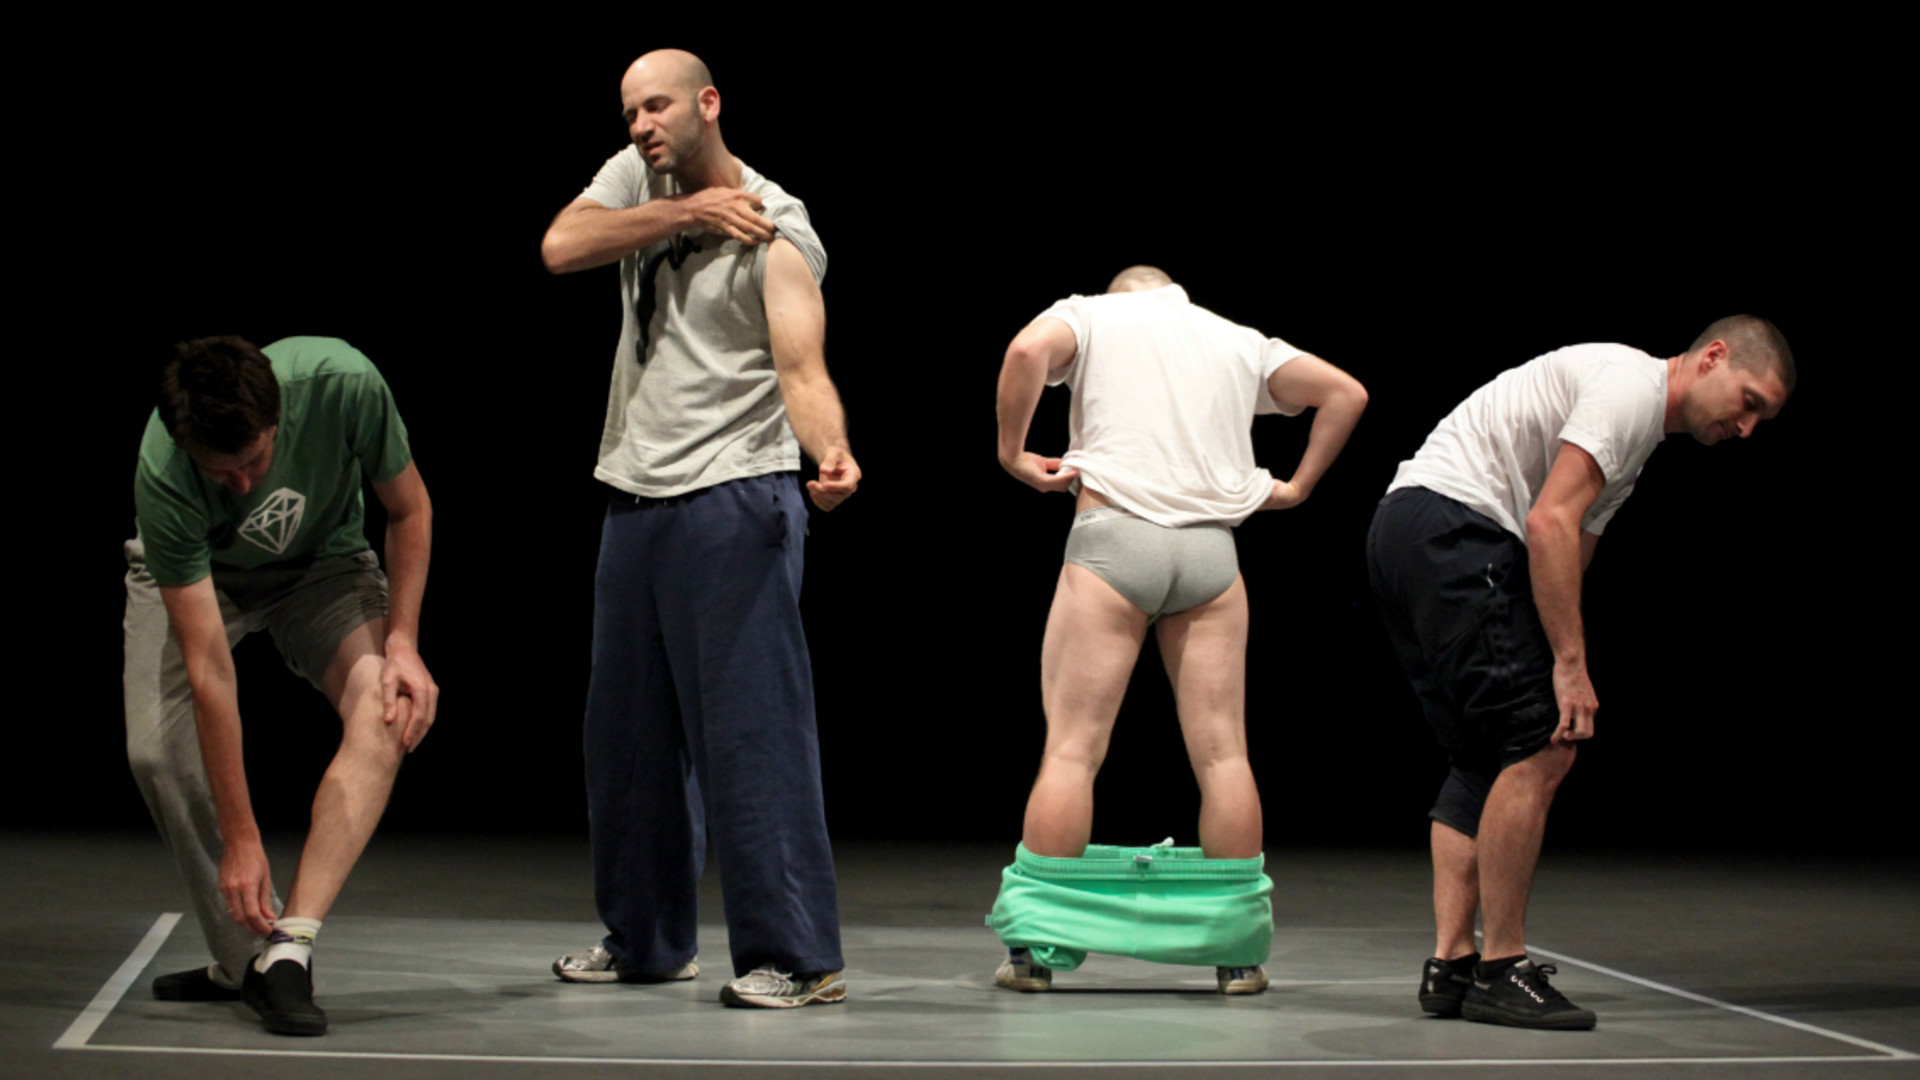 Dancers stand in a line. The first one is bent over pulling on his sock, the second stands upright lifting his tshirt sleeve, the third stands facing away with his pants around his ankles and the forth is bent over at the hip, facing sideways.